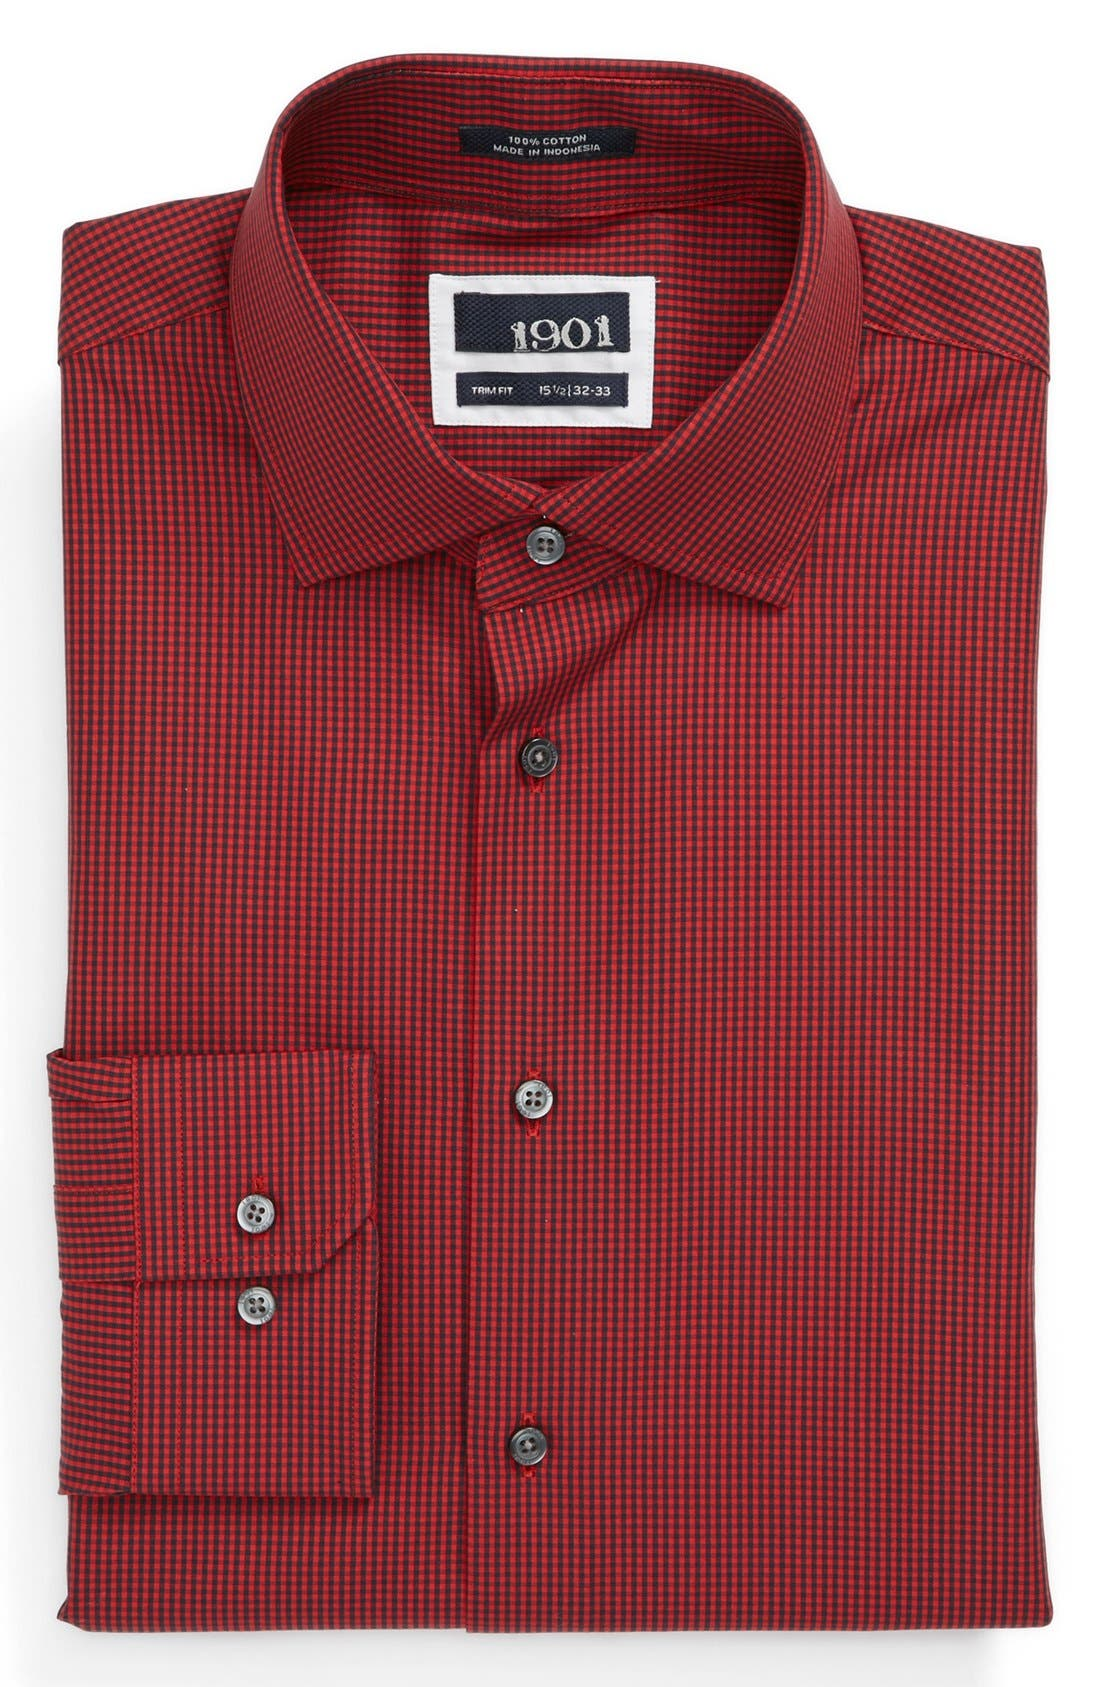 Alternate Image 1 Selected - 1901 Trim Fit Check Dress Shirt